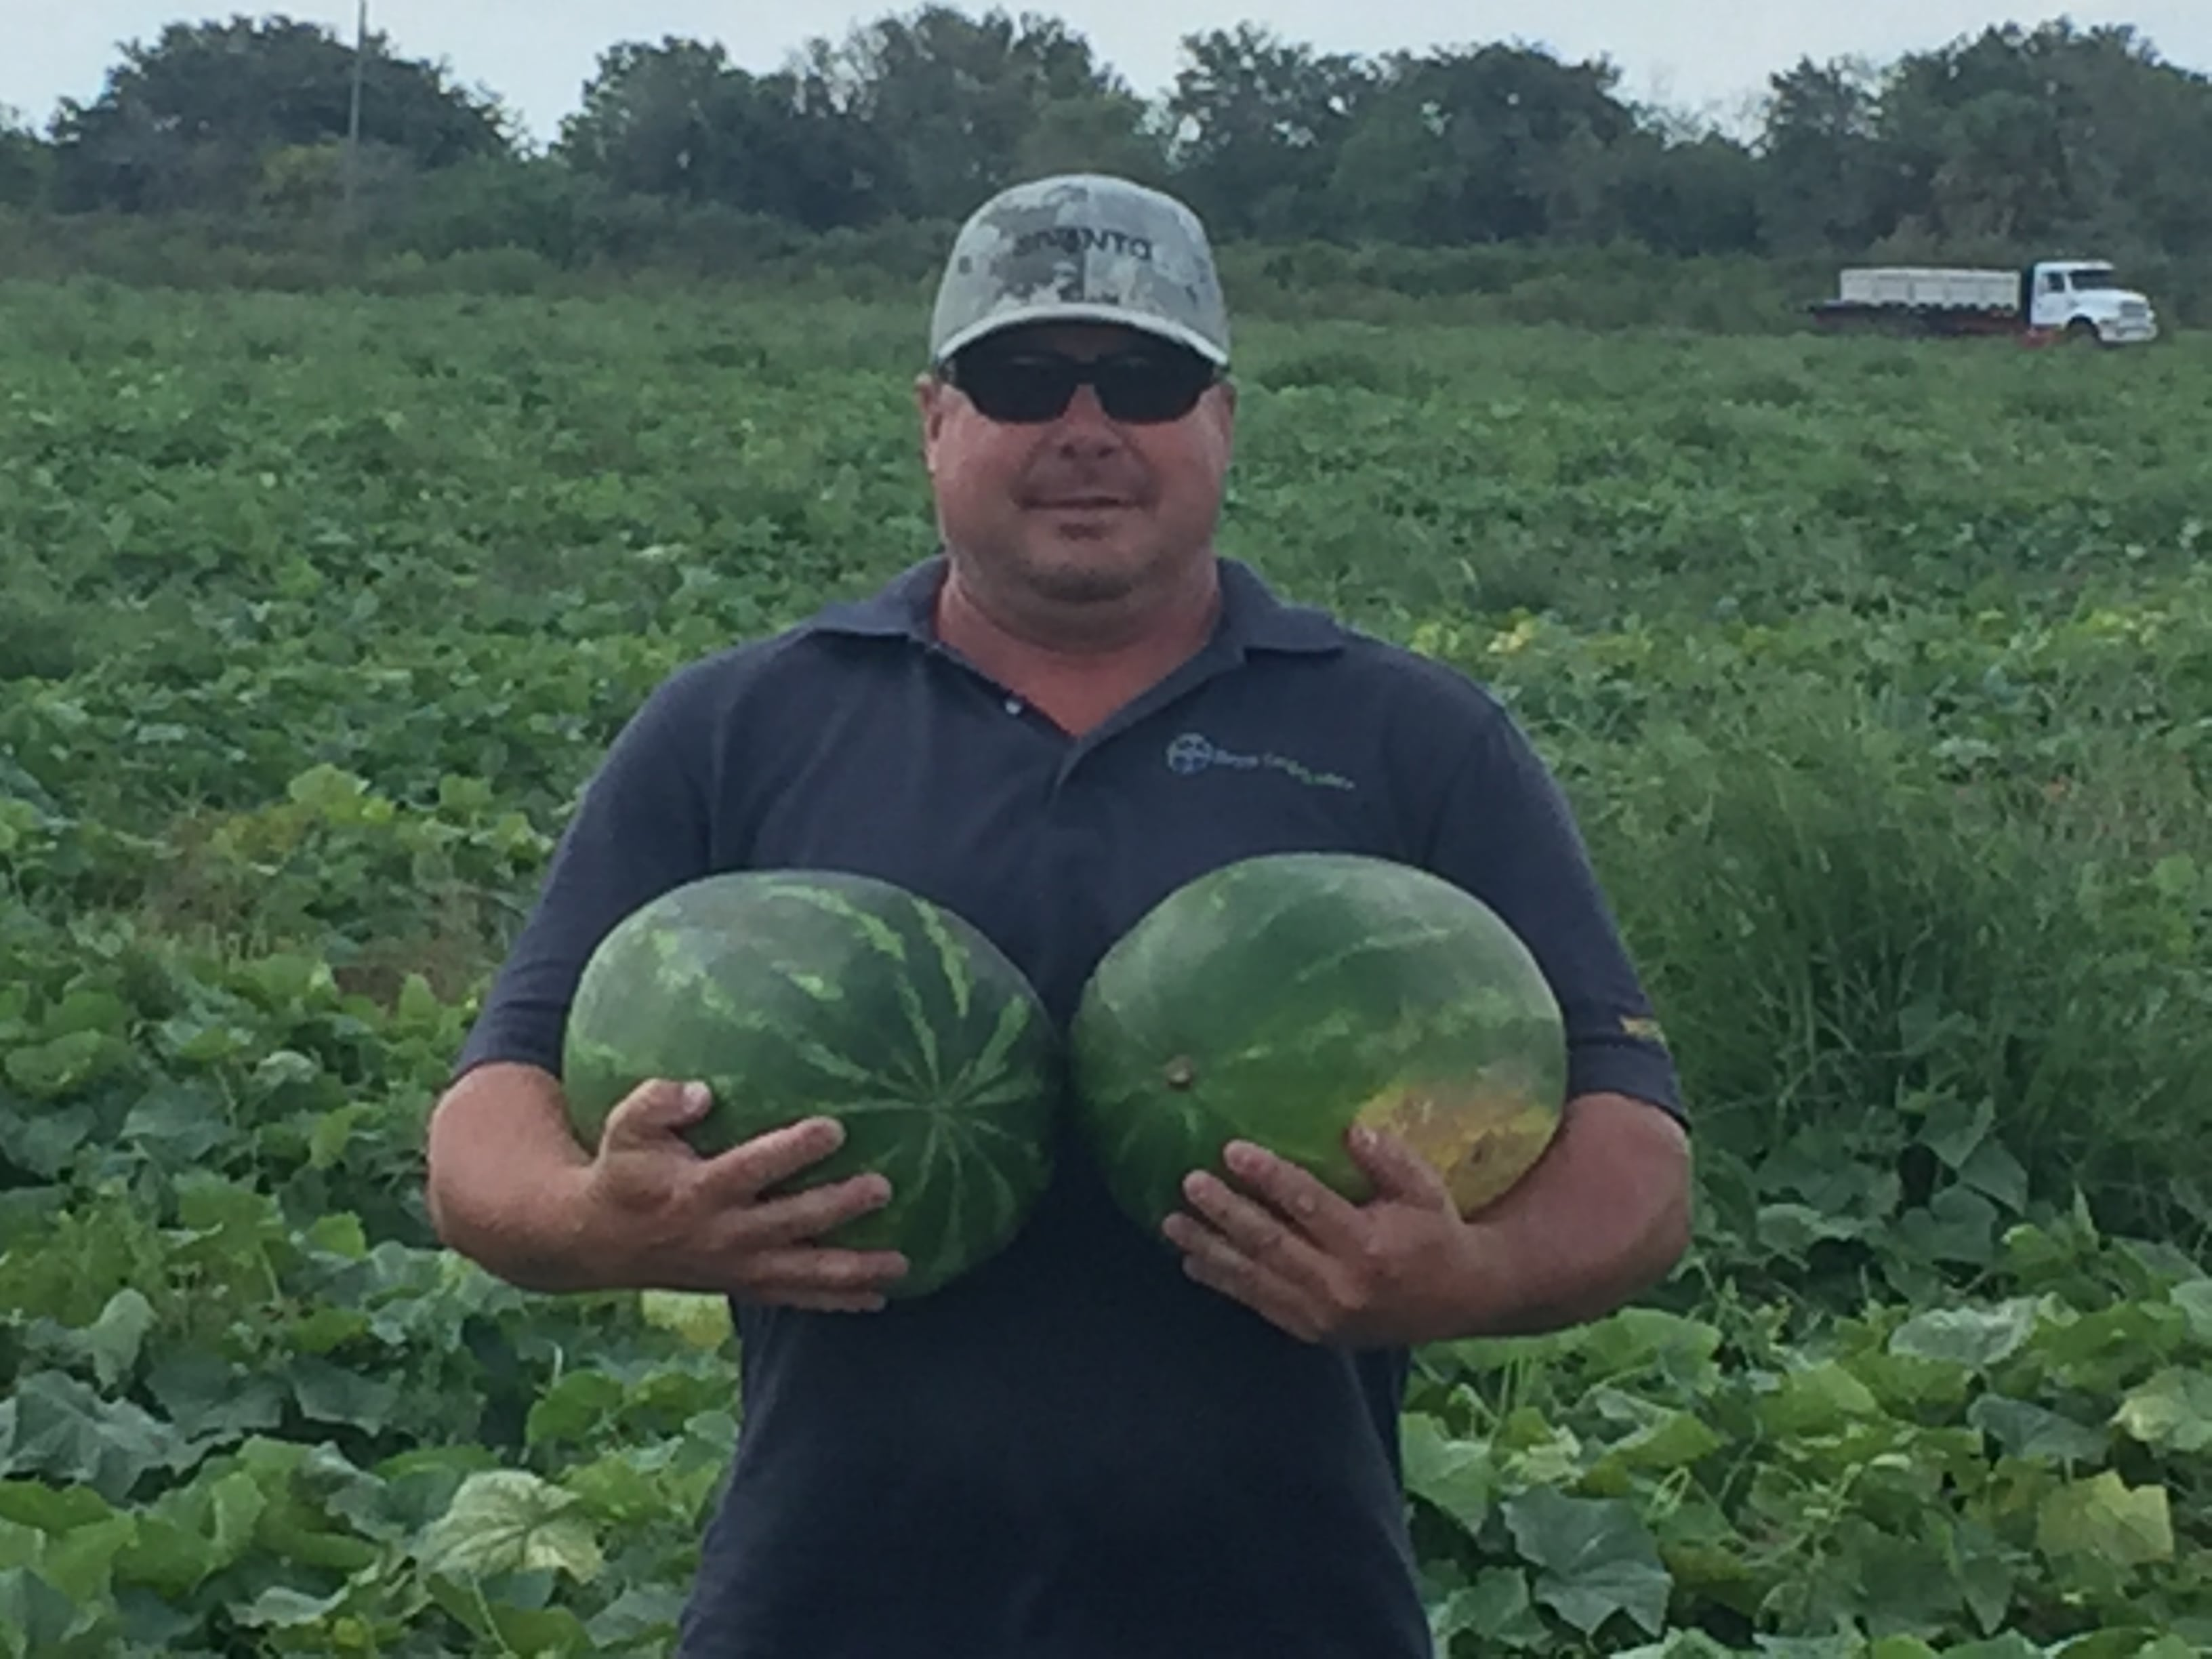 Stacey Howell holding watermelons